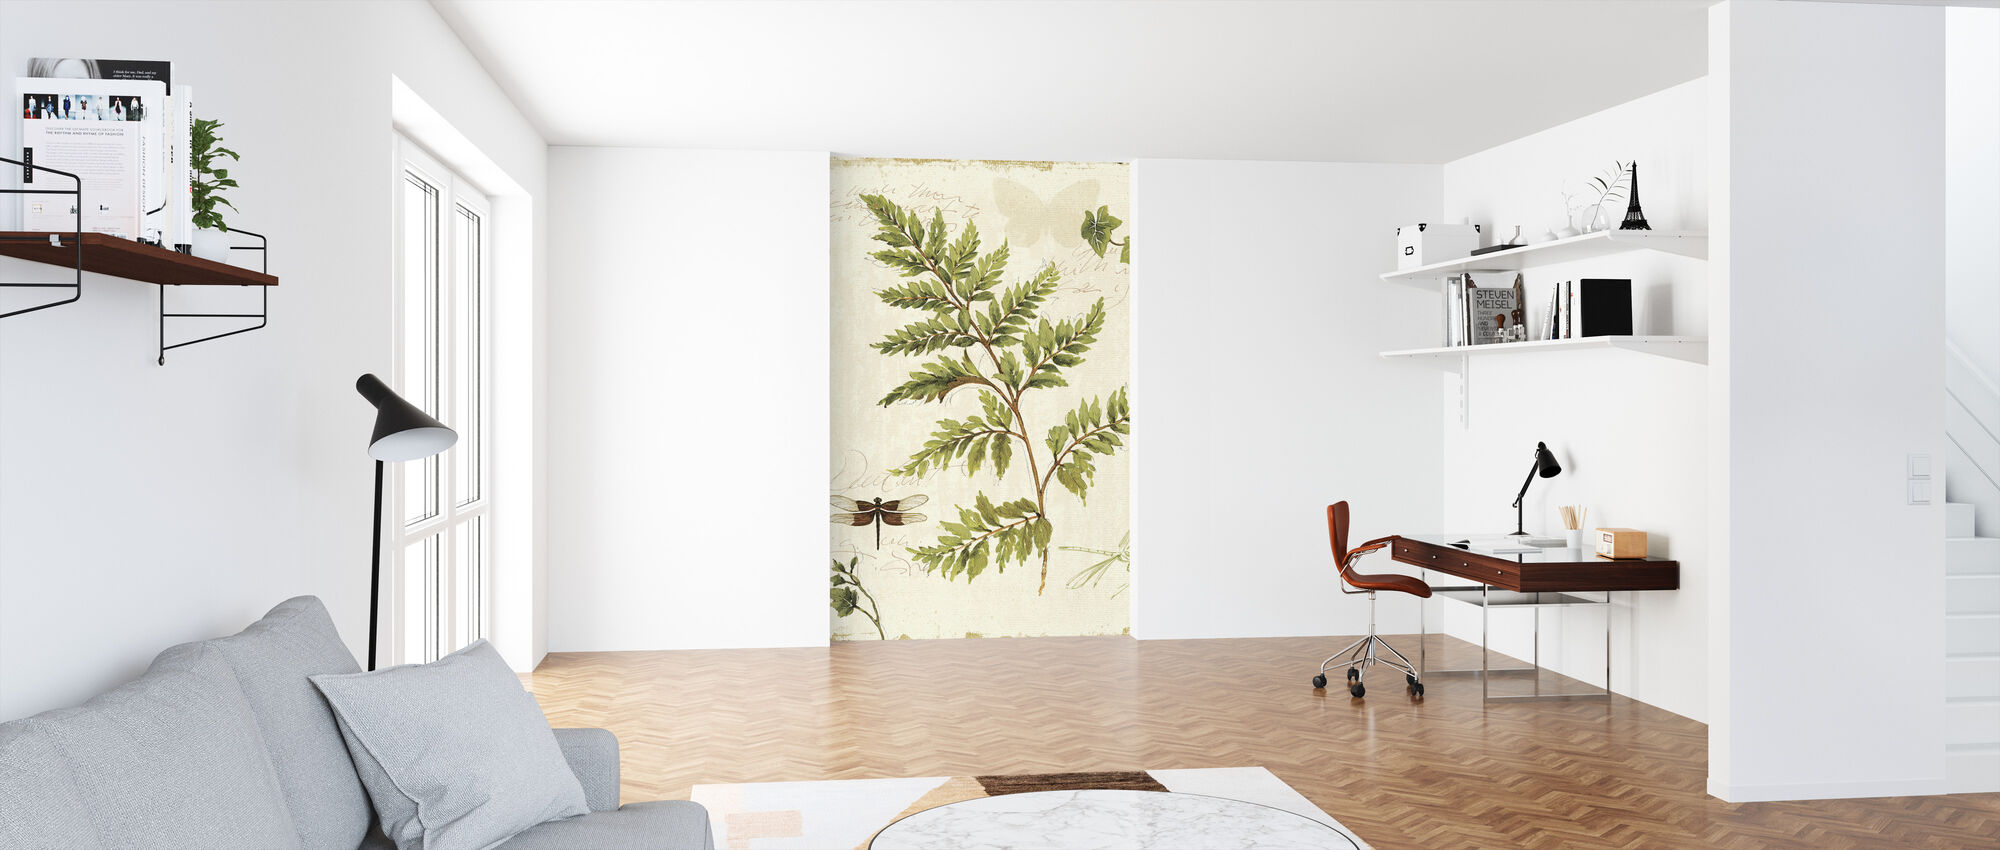 Ivies and Ferns - Wallpaper - Office